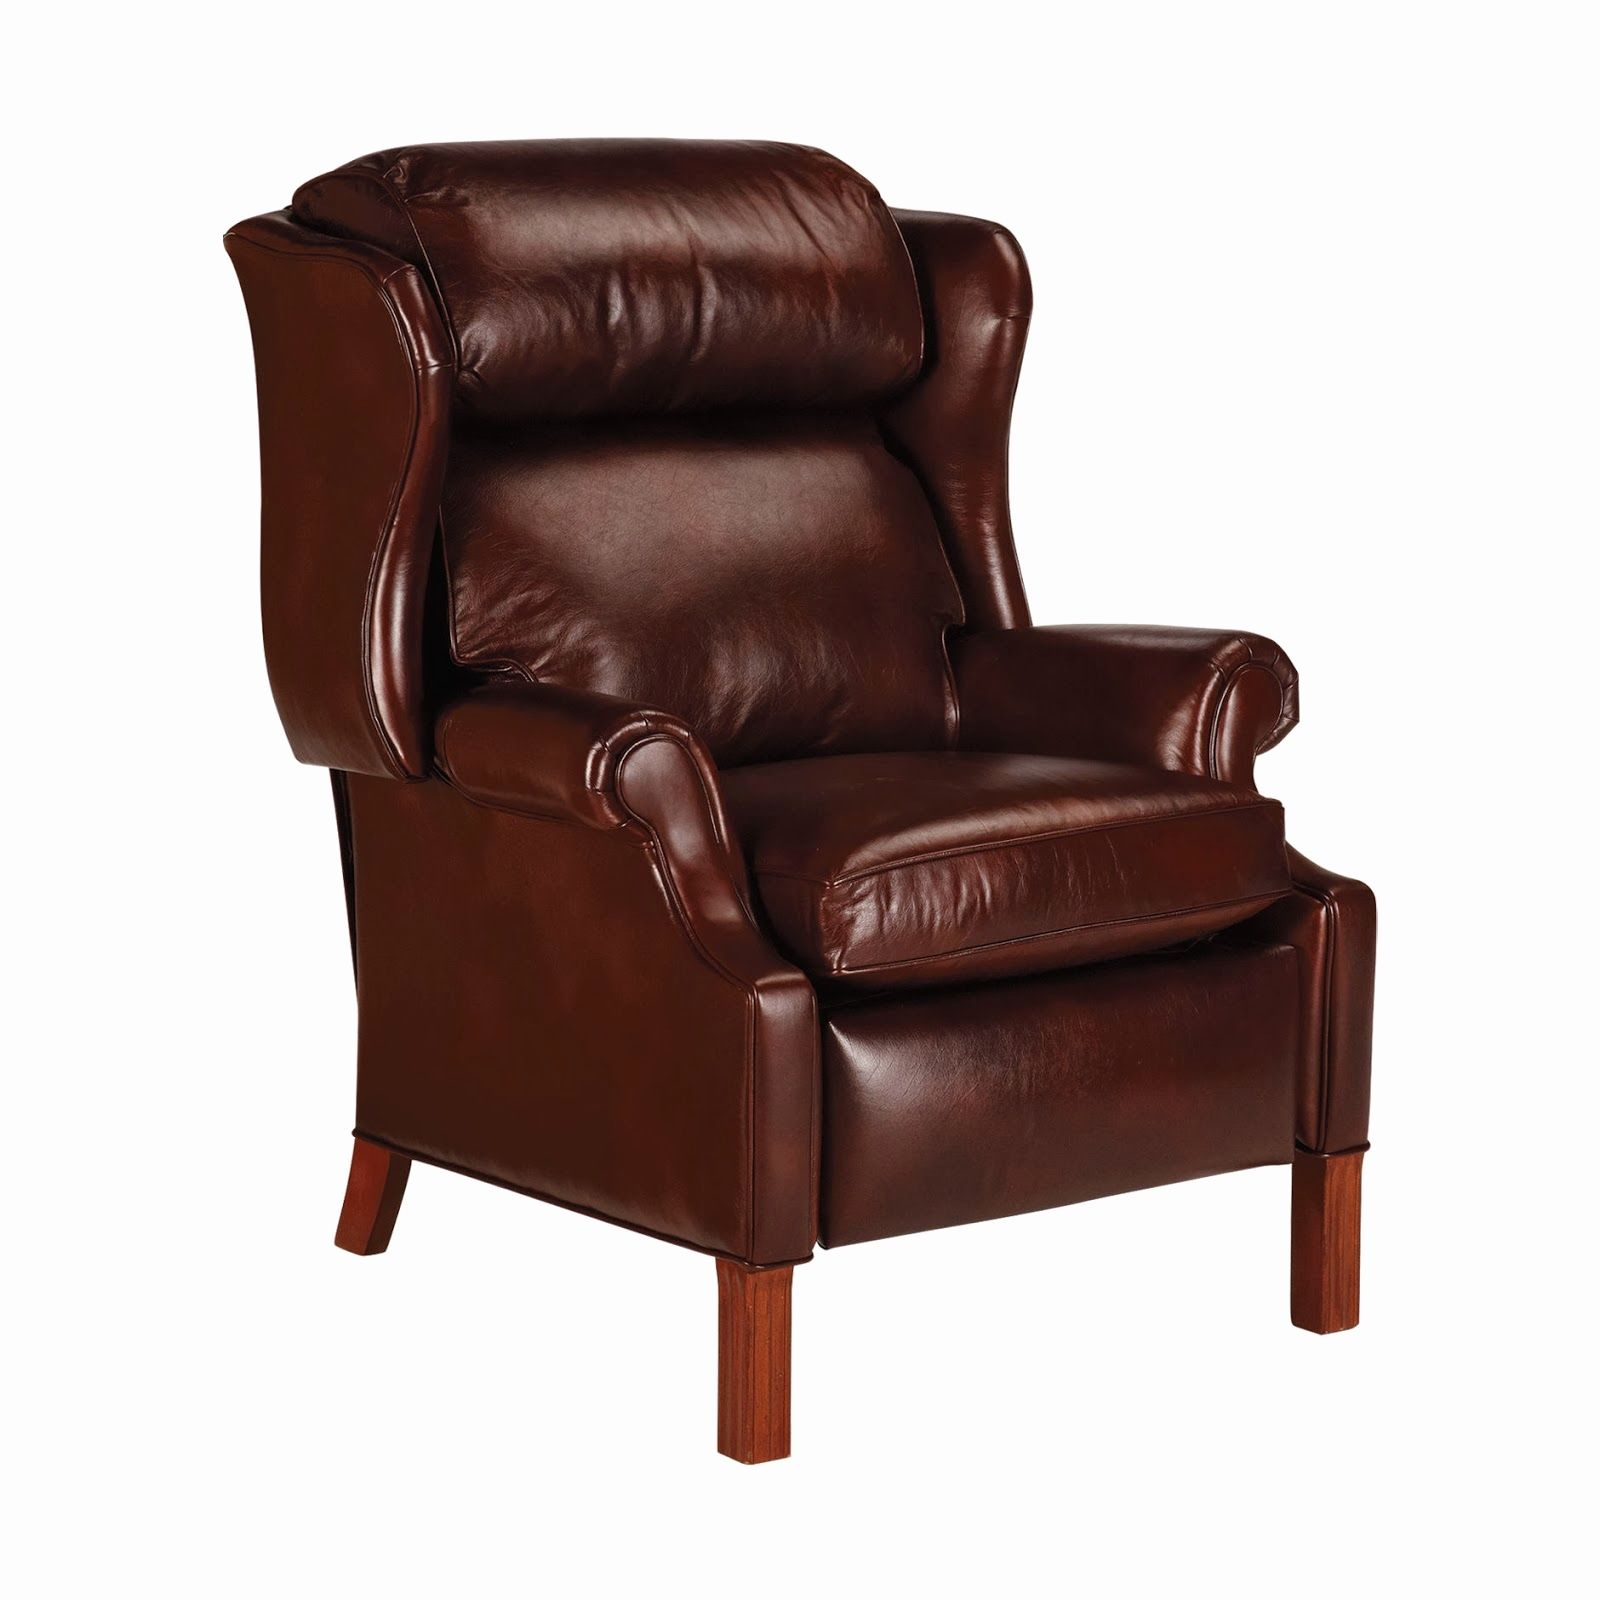 awesome ethan allen leather sofa construction-Fascinating Ethan Allen Leather sofa Image